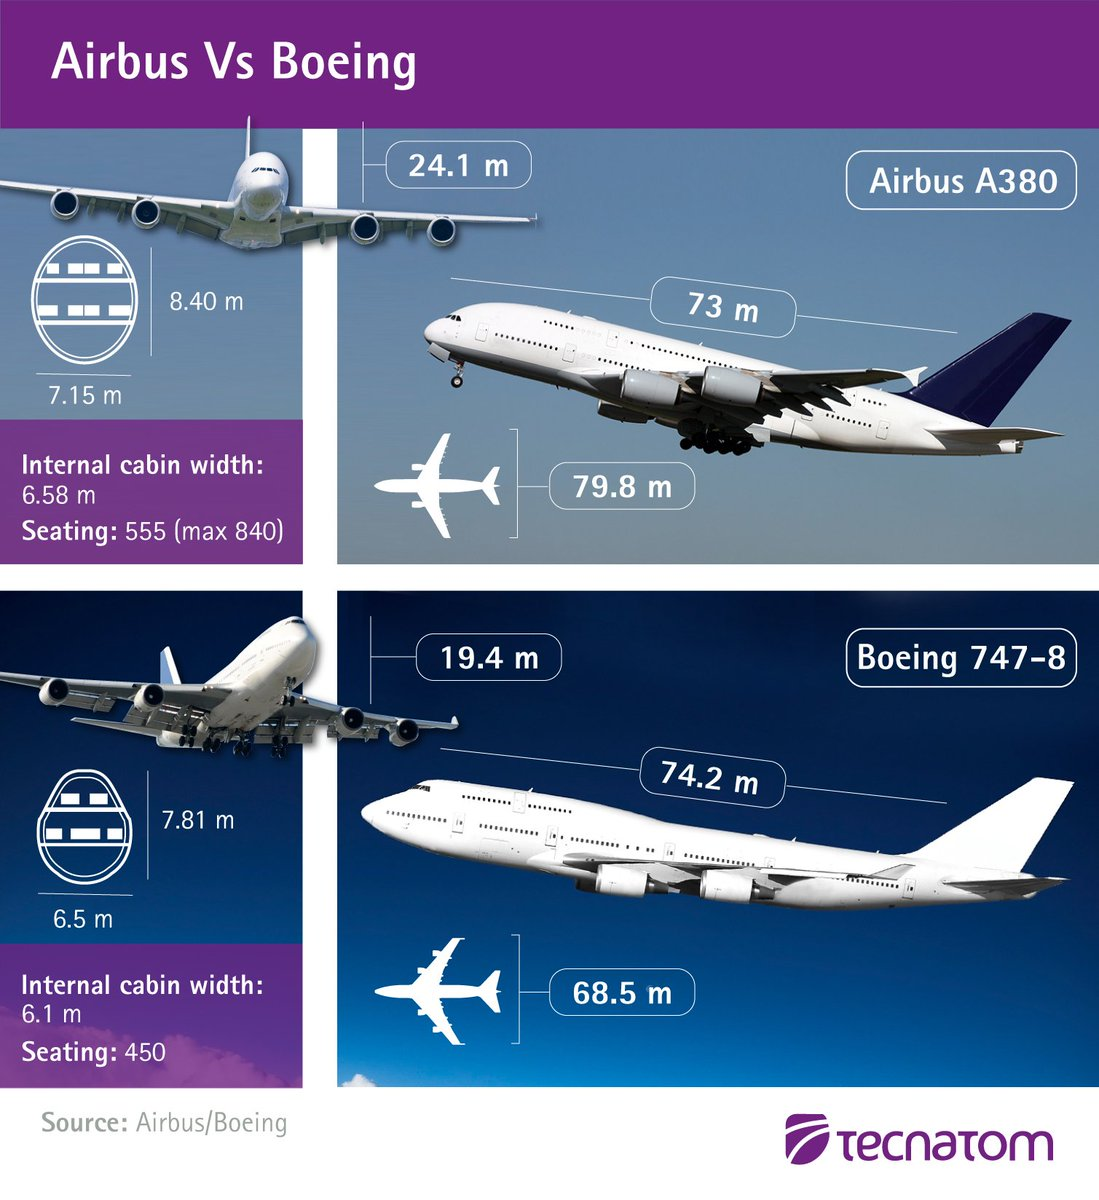 boeing and airbus competition analysis Competitor, was progressively increasing its market share by early 2000s, airbus was consistently garnering a larger share of new orders than boeing, and in 2003, it even surpassed boeing for the first time in deliveries of aircrafts (305 deliveries by airbus as against only 281 by boeing)  the.